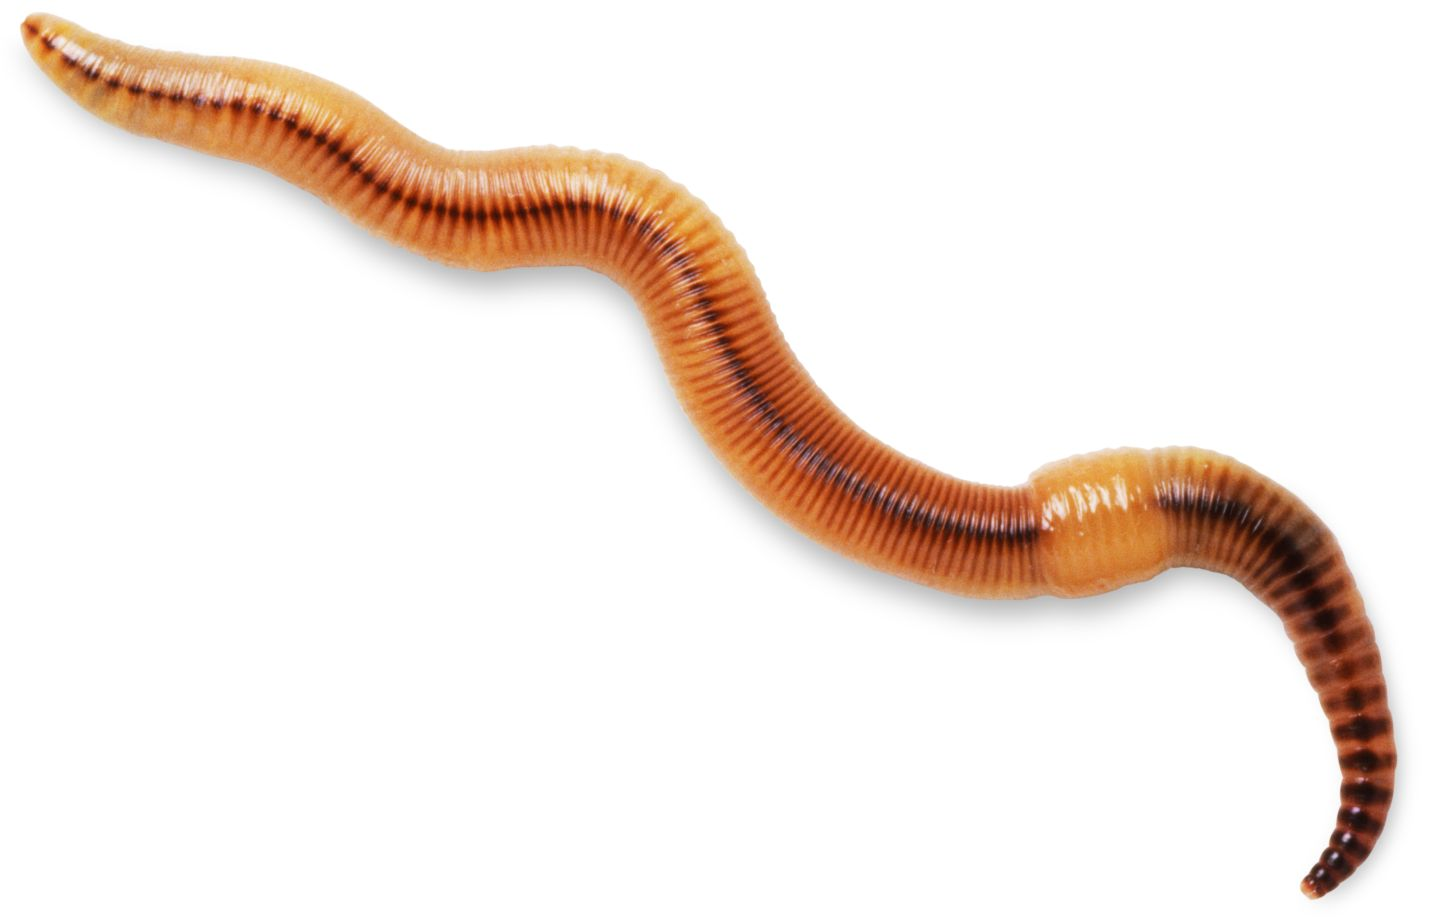 species identification of earth worms in kerala Unless an authentic record of available earthworm species is made, the  km2  spread across the three states ie, kerala, karnataka and tamil nadu  julka,  emeritus scientist, zsi during the identification of earthworms.